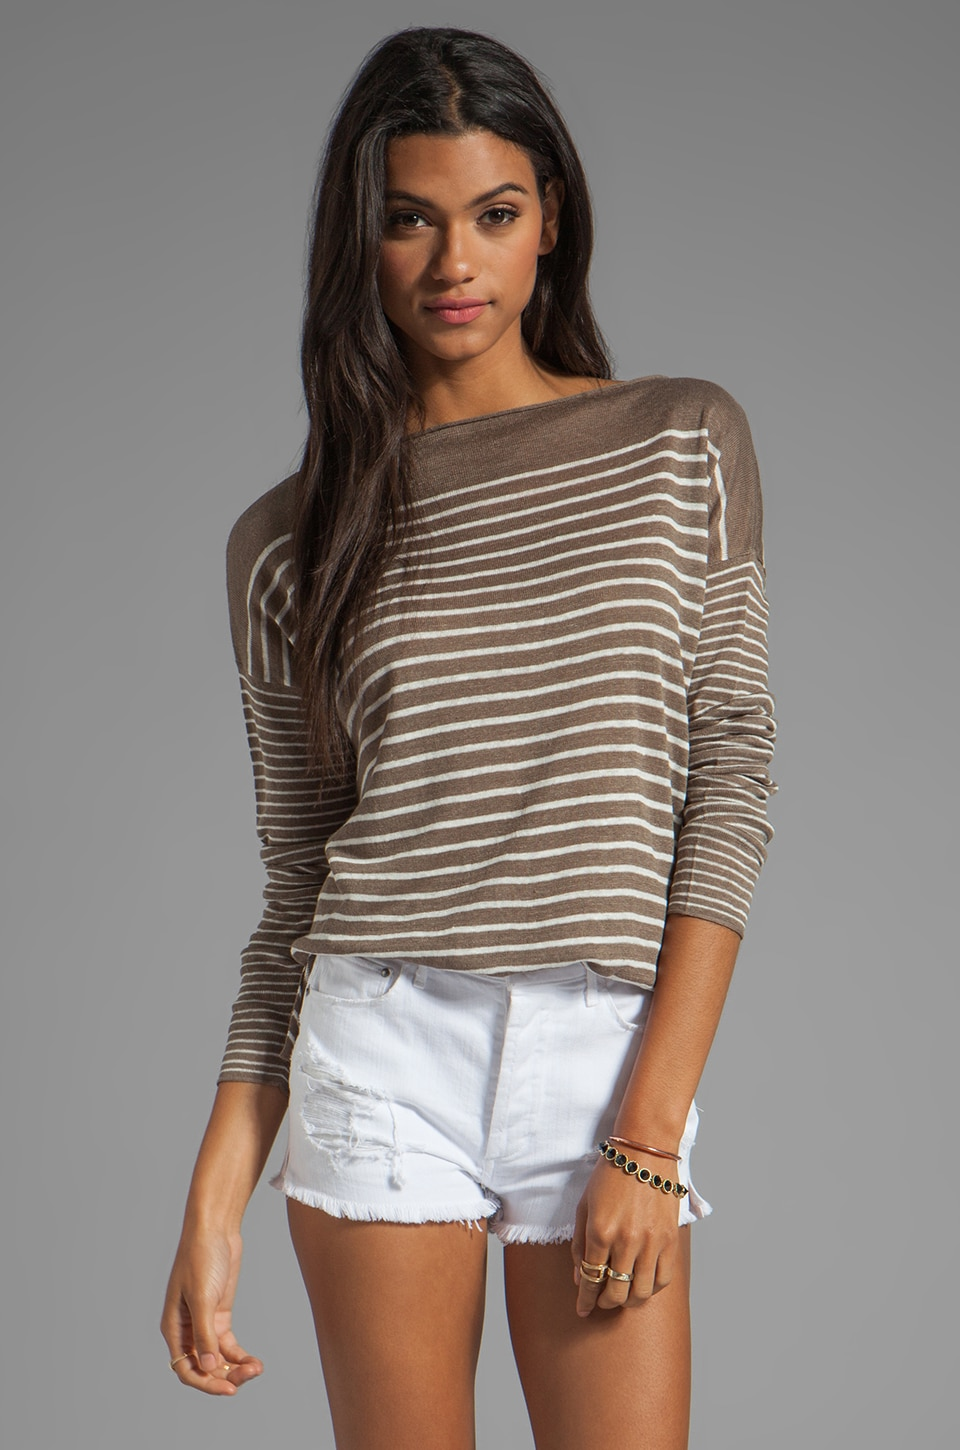 Vince 100% Linen Breton Striped Boatneck in Earth and Sailcloth